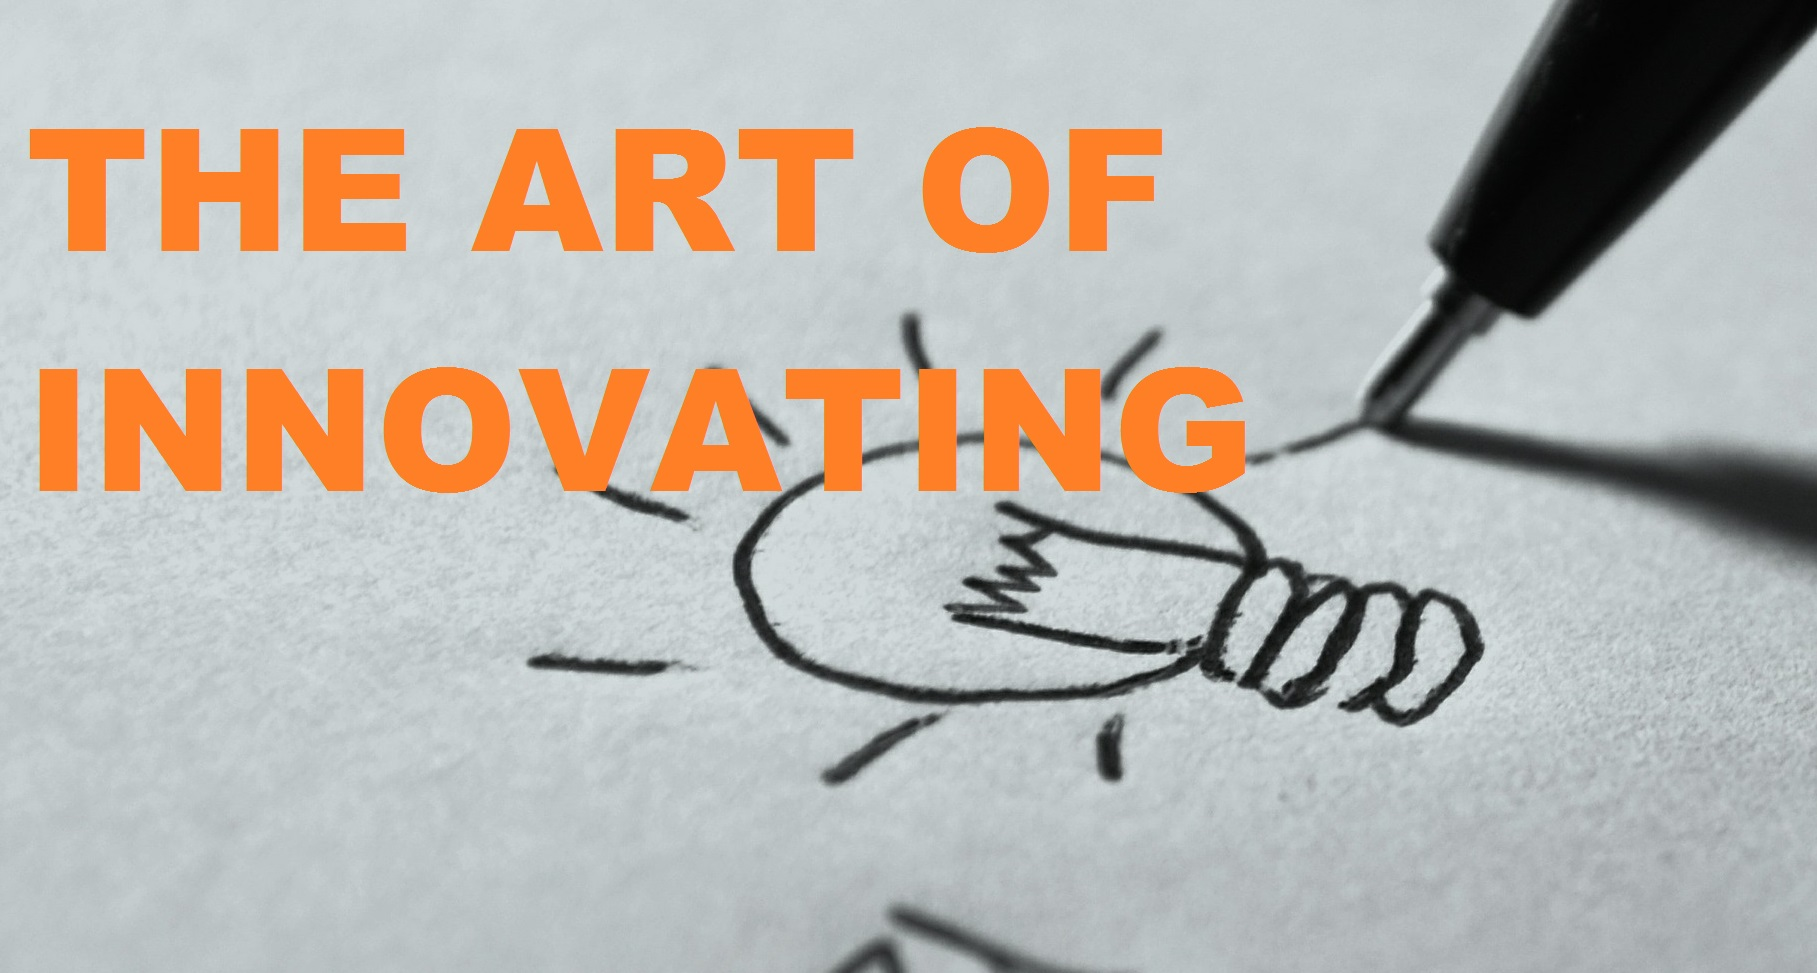 THE ART OF INNOVATING